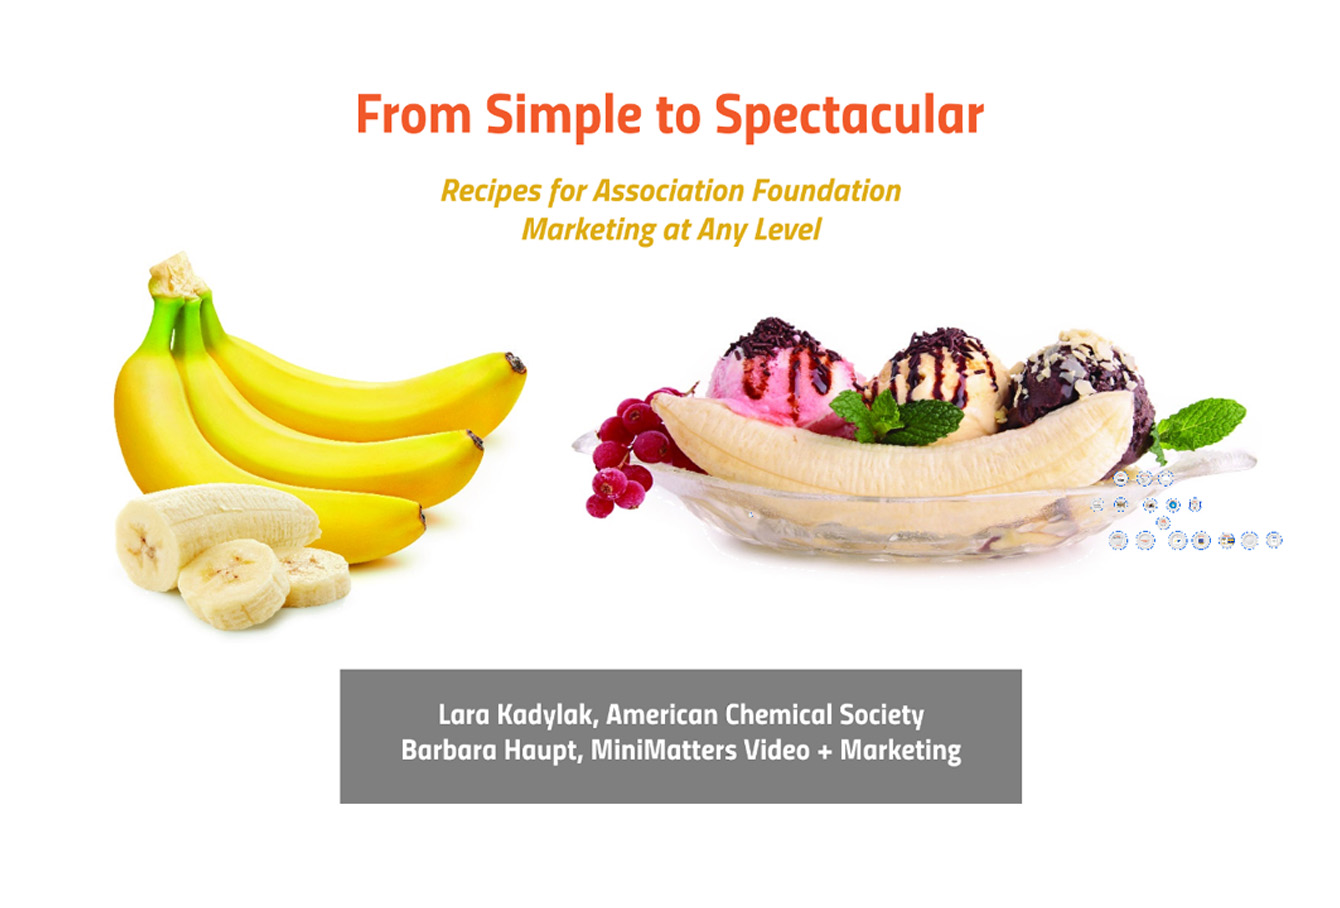 AFG Presentation From Simple to Spectacular Recipes for Association Foundation Marketing at Any Level by Barbara Haupt and Lara Kadylak 5 15 19 AFG Simple to Spectacular Recipes for Association Foundation Marketing at any Level %page